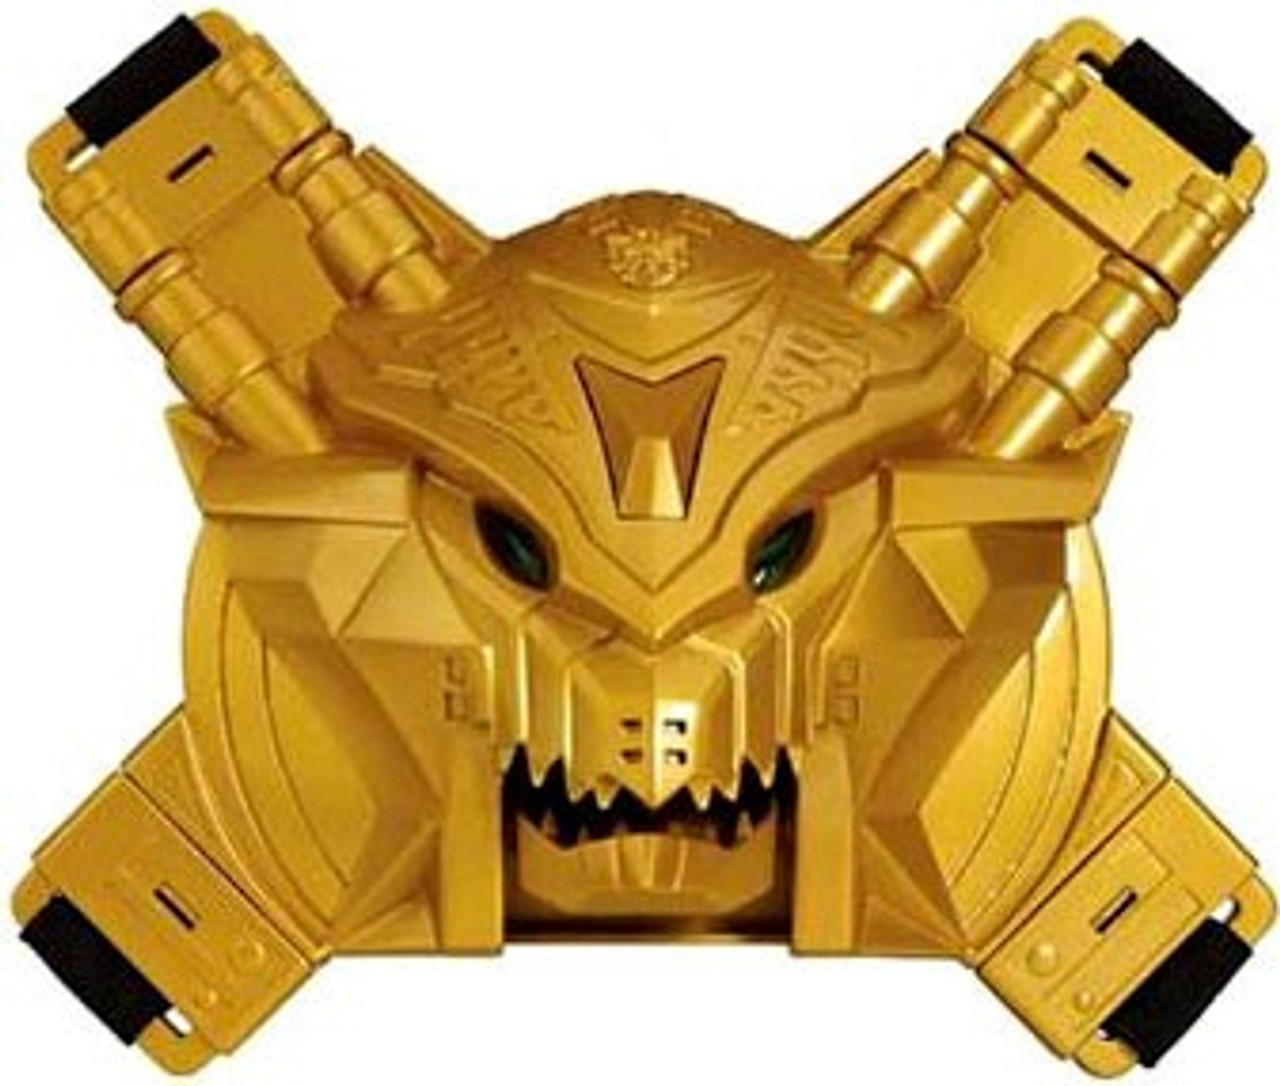 Power Rangers Megaforce Ultra Dragon Chest Armor Roleplay Toy Bandai America Toywiz The most common power ranger armor material is ceramic. jakks pacific